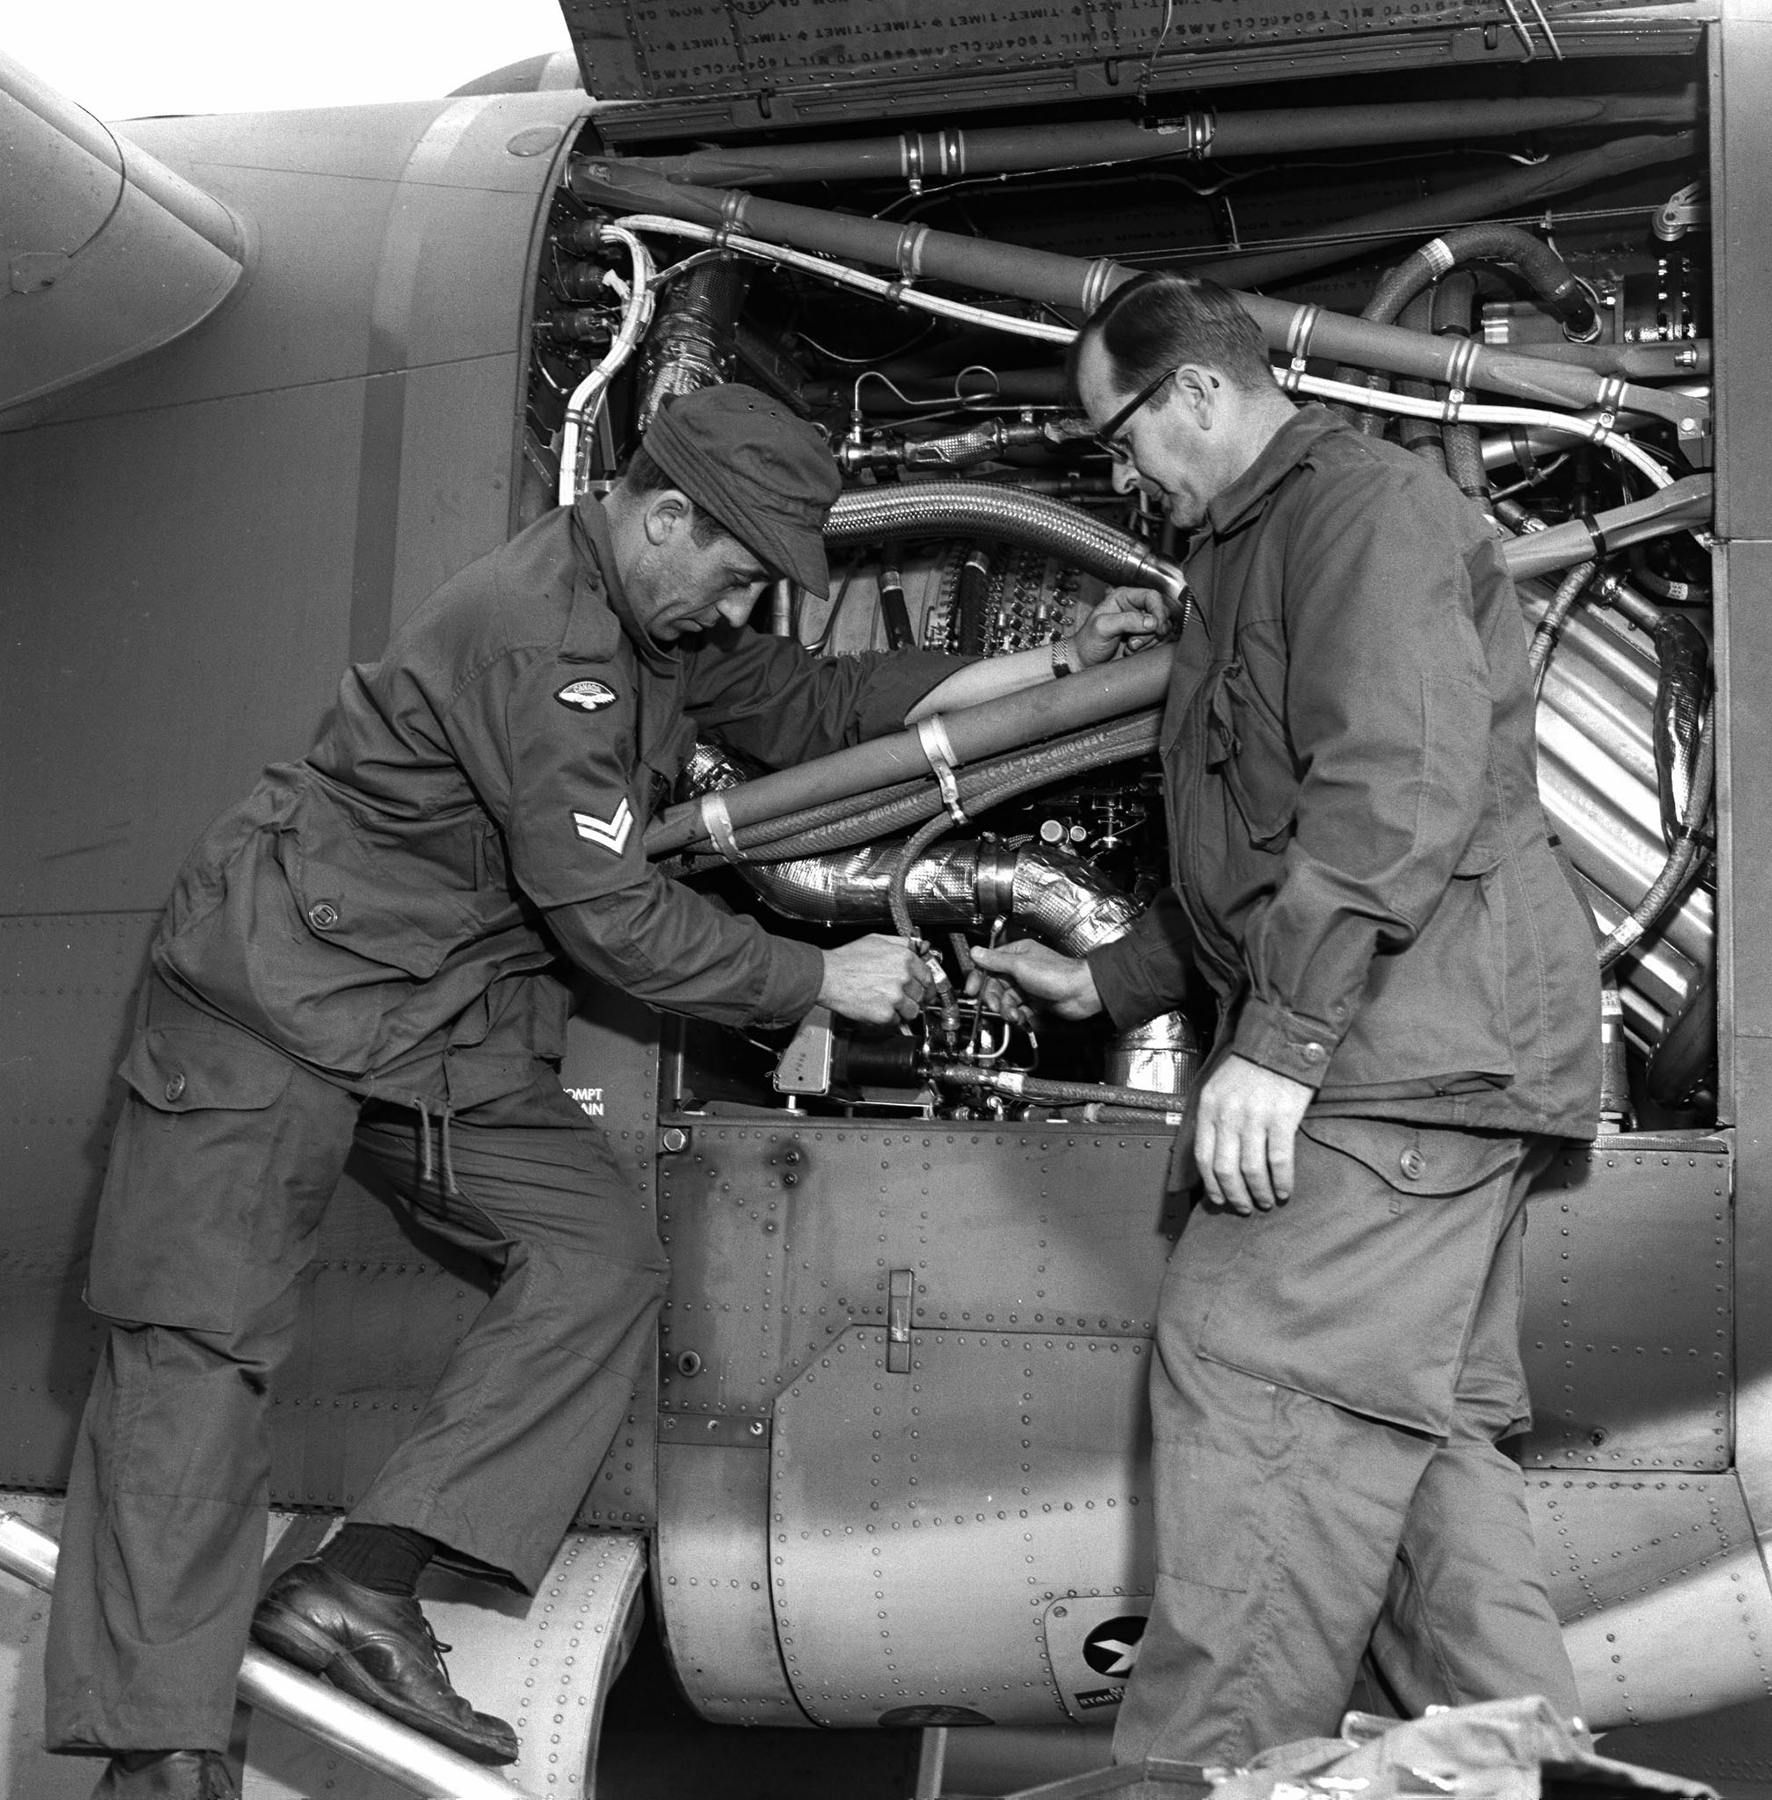 Corporal Andre Brown and Corporal Rolly Hains, of 429 (Aircraft Activity) Squadron, check the engine of a CC-115 Buffalo aircraft on May 15, 1968, during Exercise New Shakedown. PHOTO: DND Archives, CF68-42-6